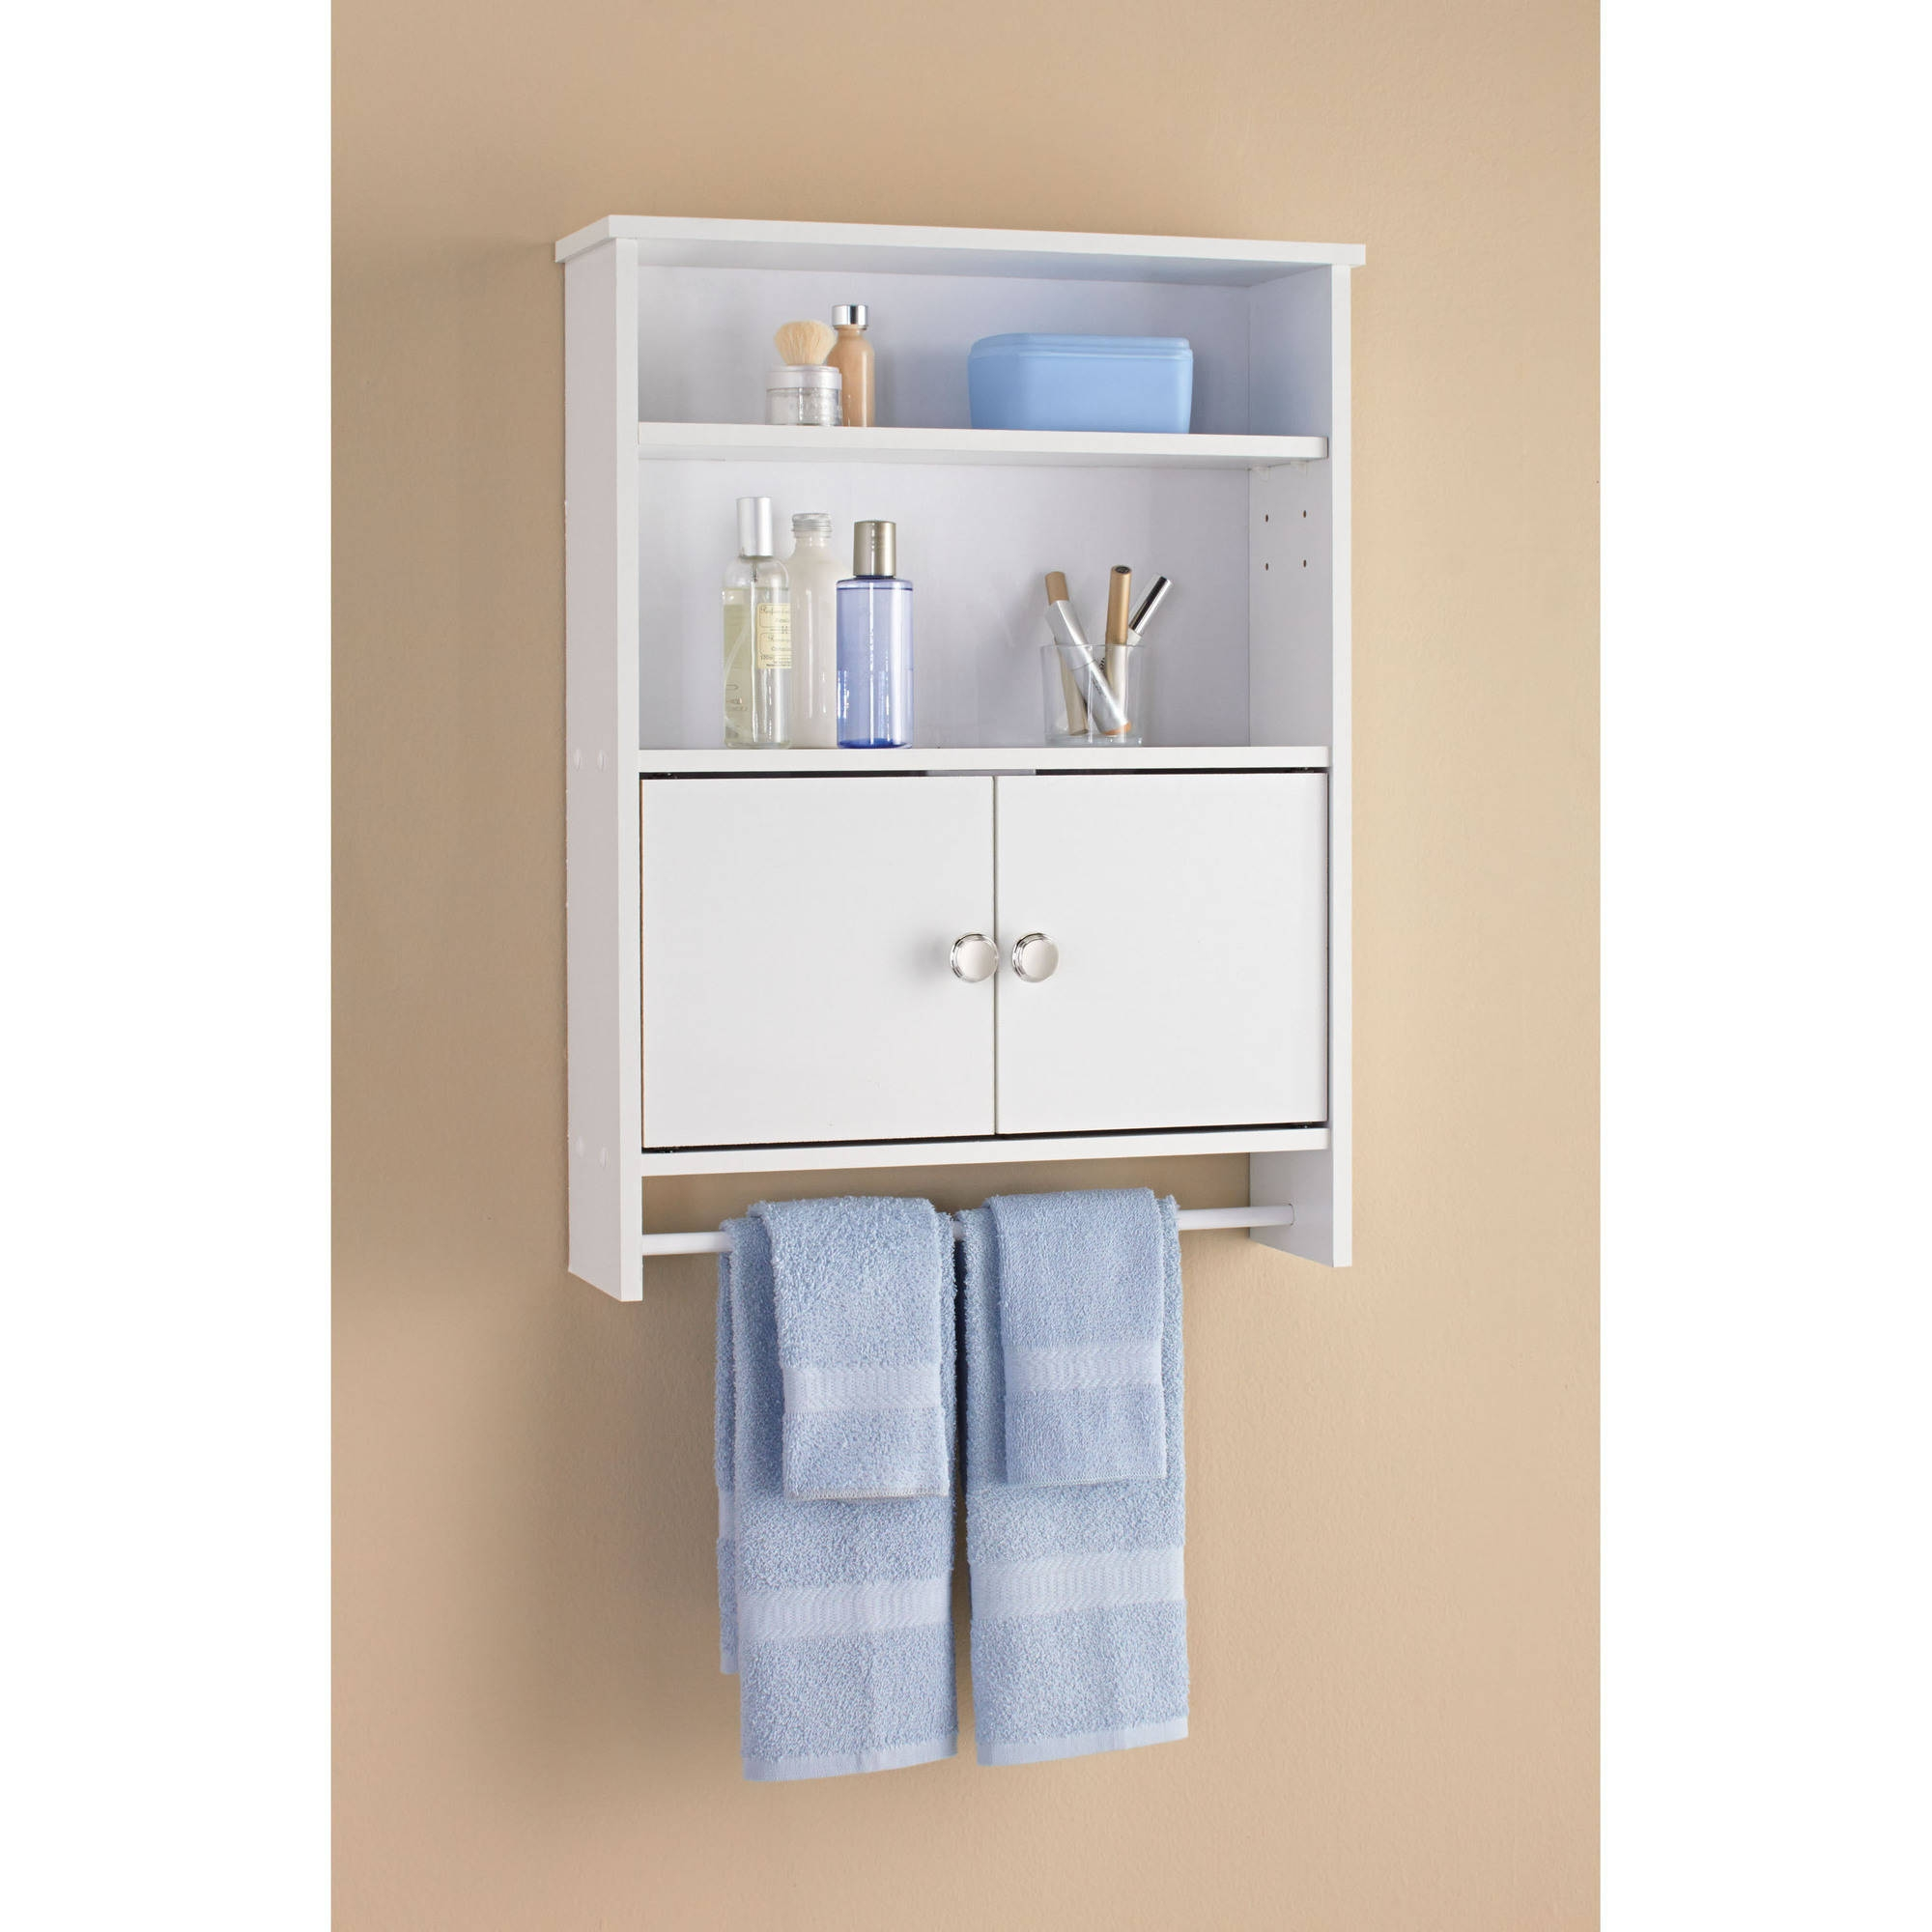 Assembled Bathroom Wall Cabinets2000 X 2000